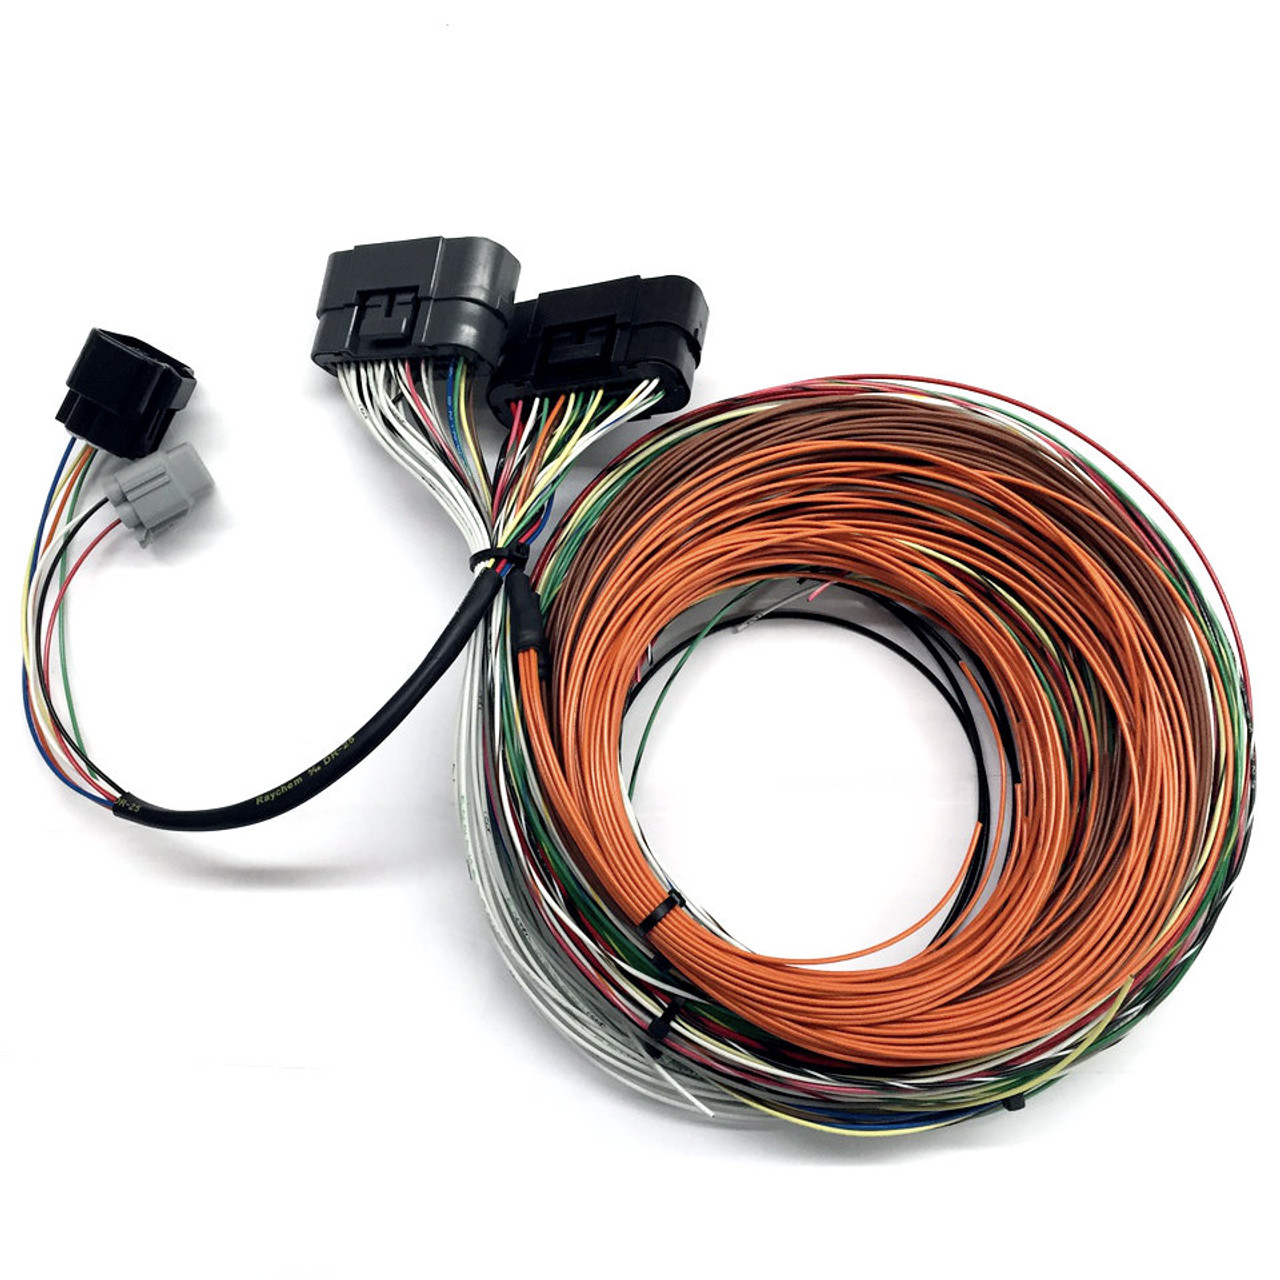 Incredible Rsr Flying Lead Wiring Harness Suzuki Gsx1300R Hayabusa 08 19 Wiring Cloud Philuggs Outletorg